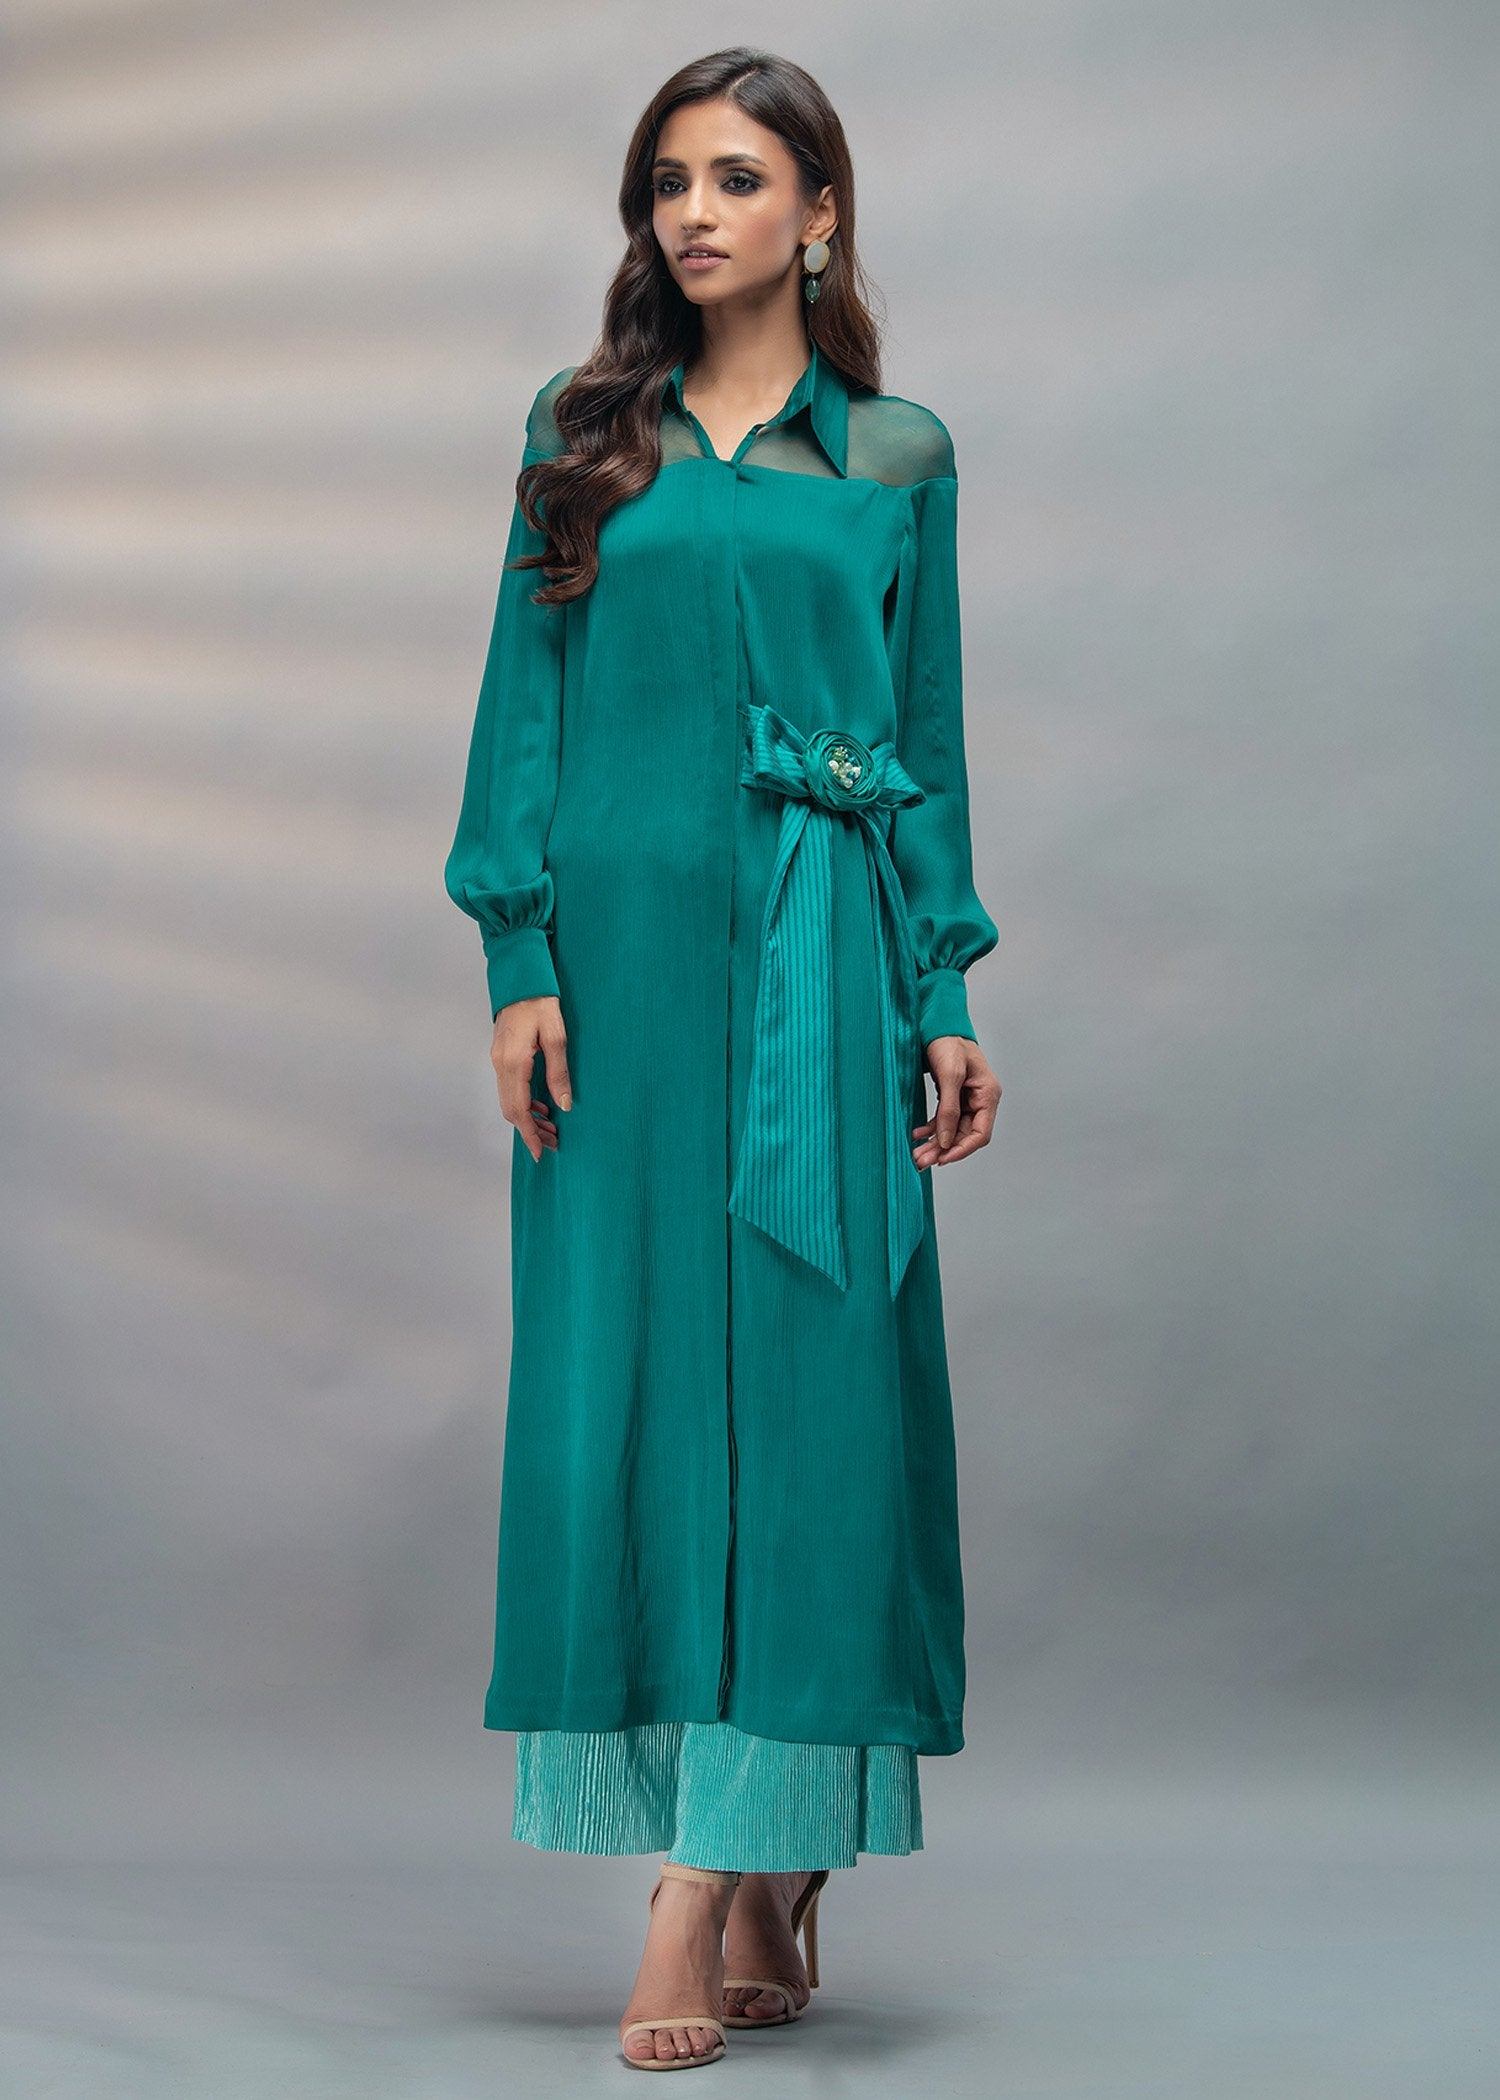 Emerald - Luxury Edition Pre-Fall 2020